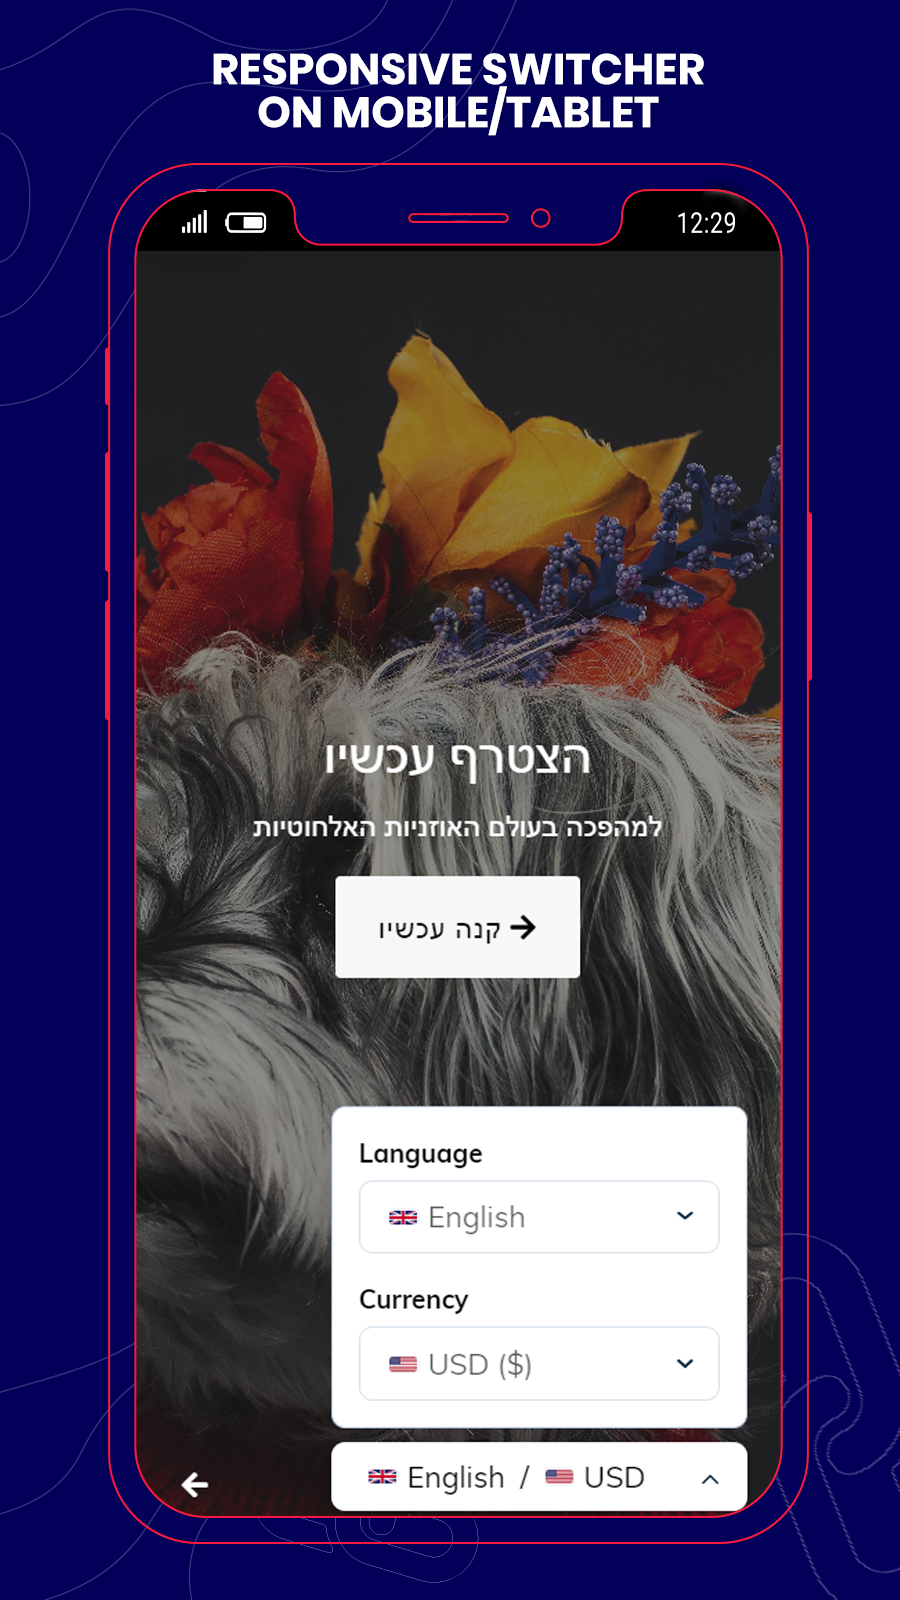 responsive language and currency switcher on mobile and tablet